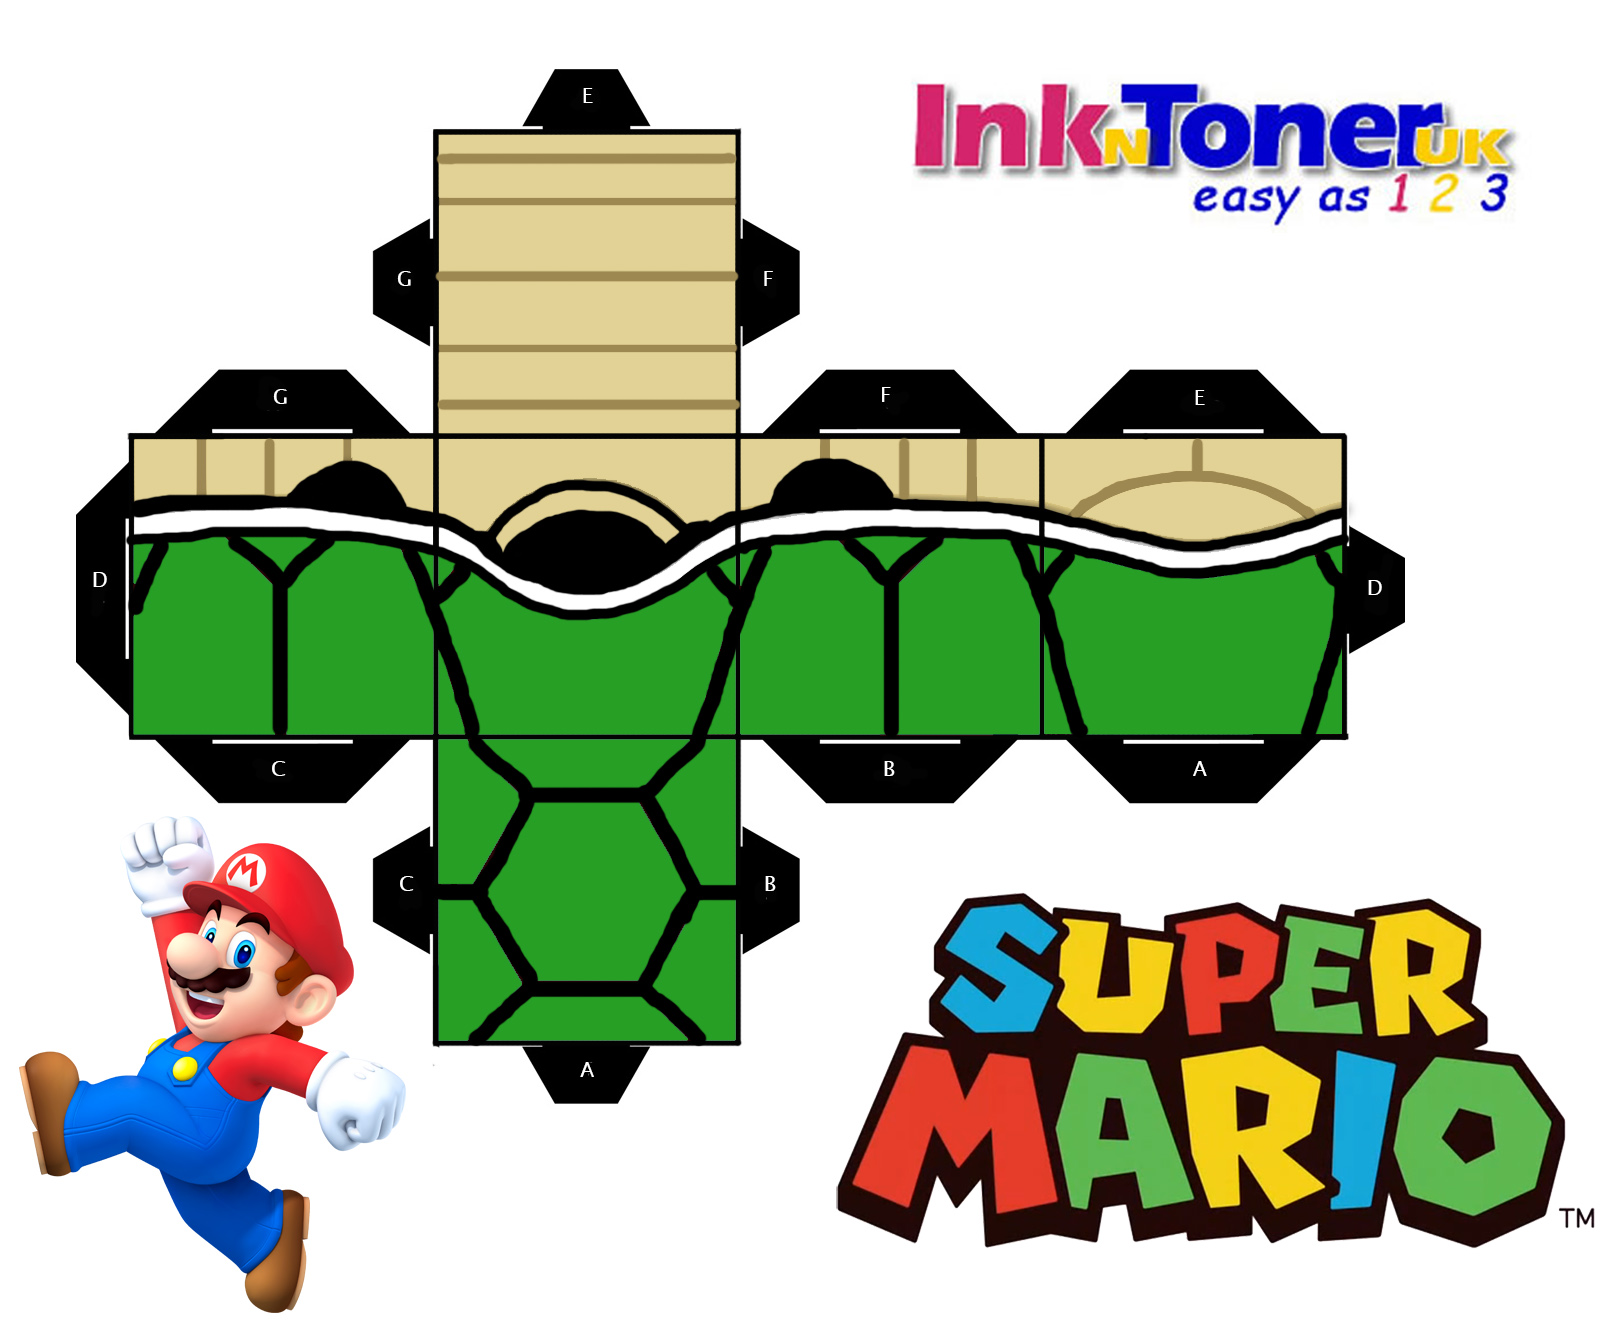 mario papercraft printable - Super Mario Pictures To Print